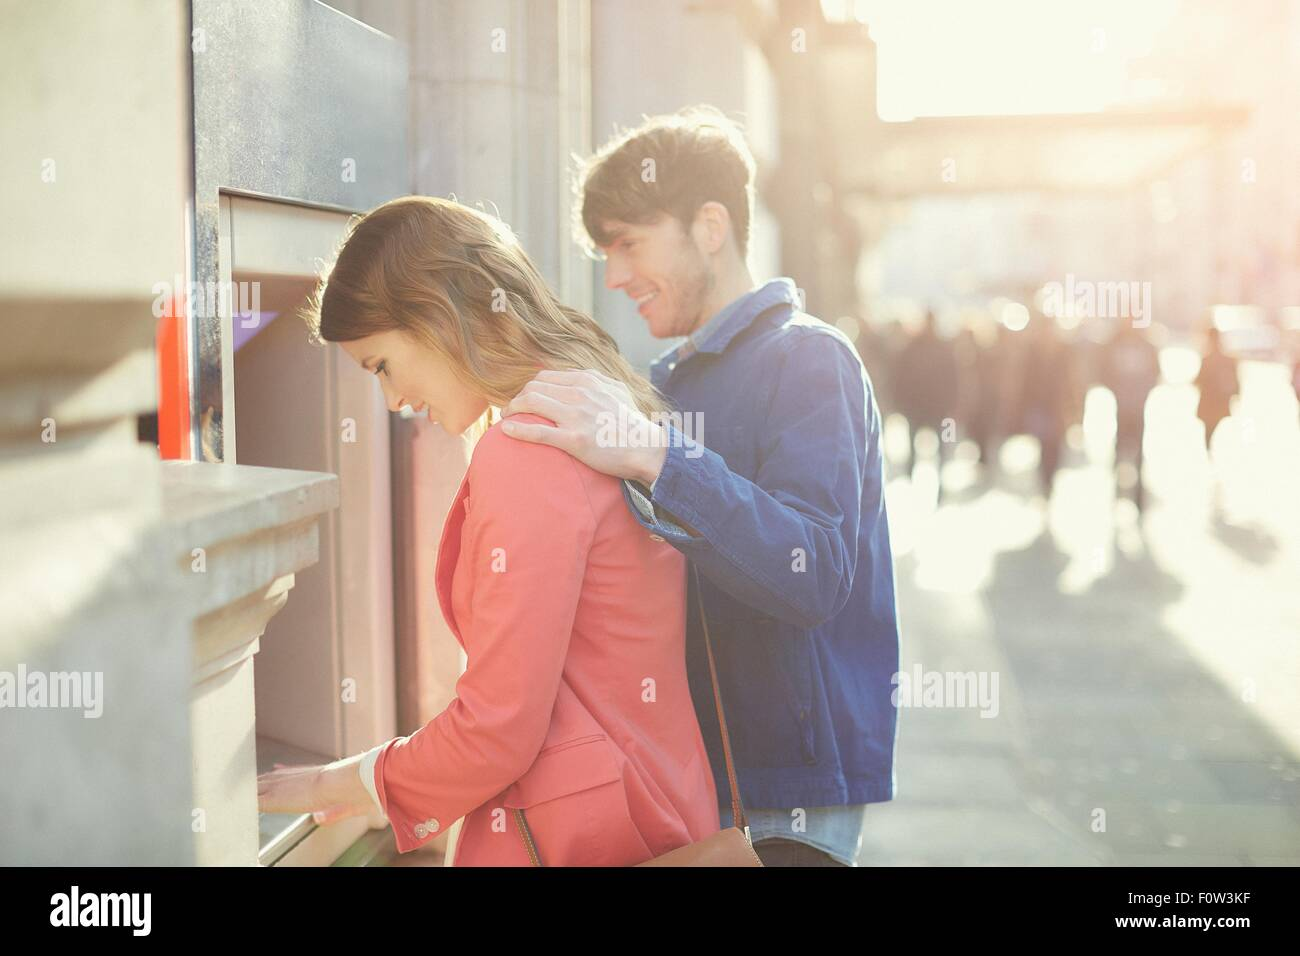 Couple withdrawing money from cash machine on street, London, UK - Stock Image